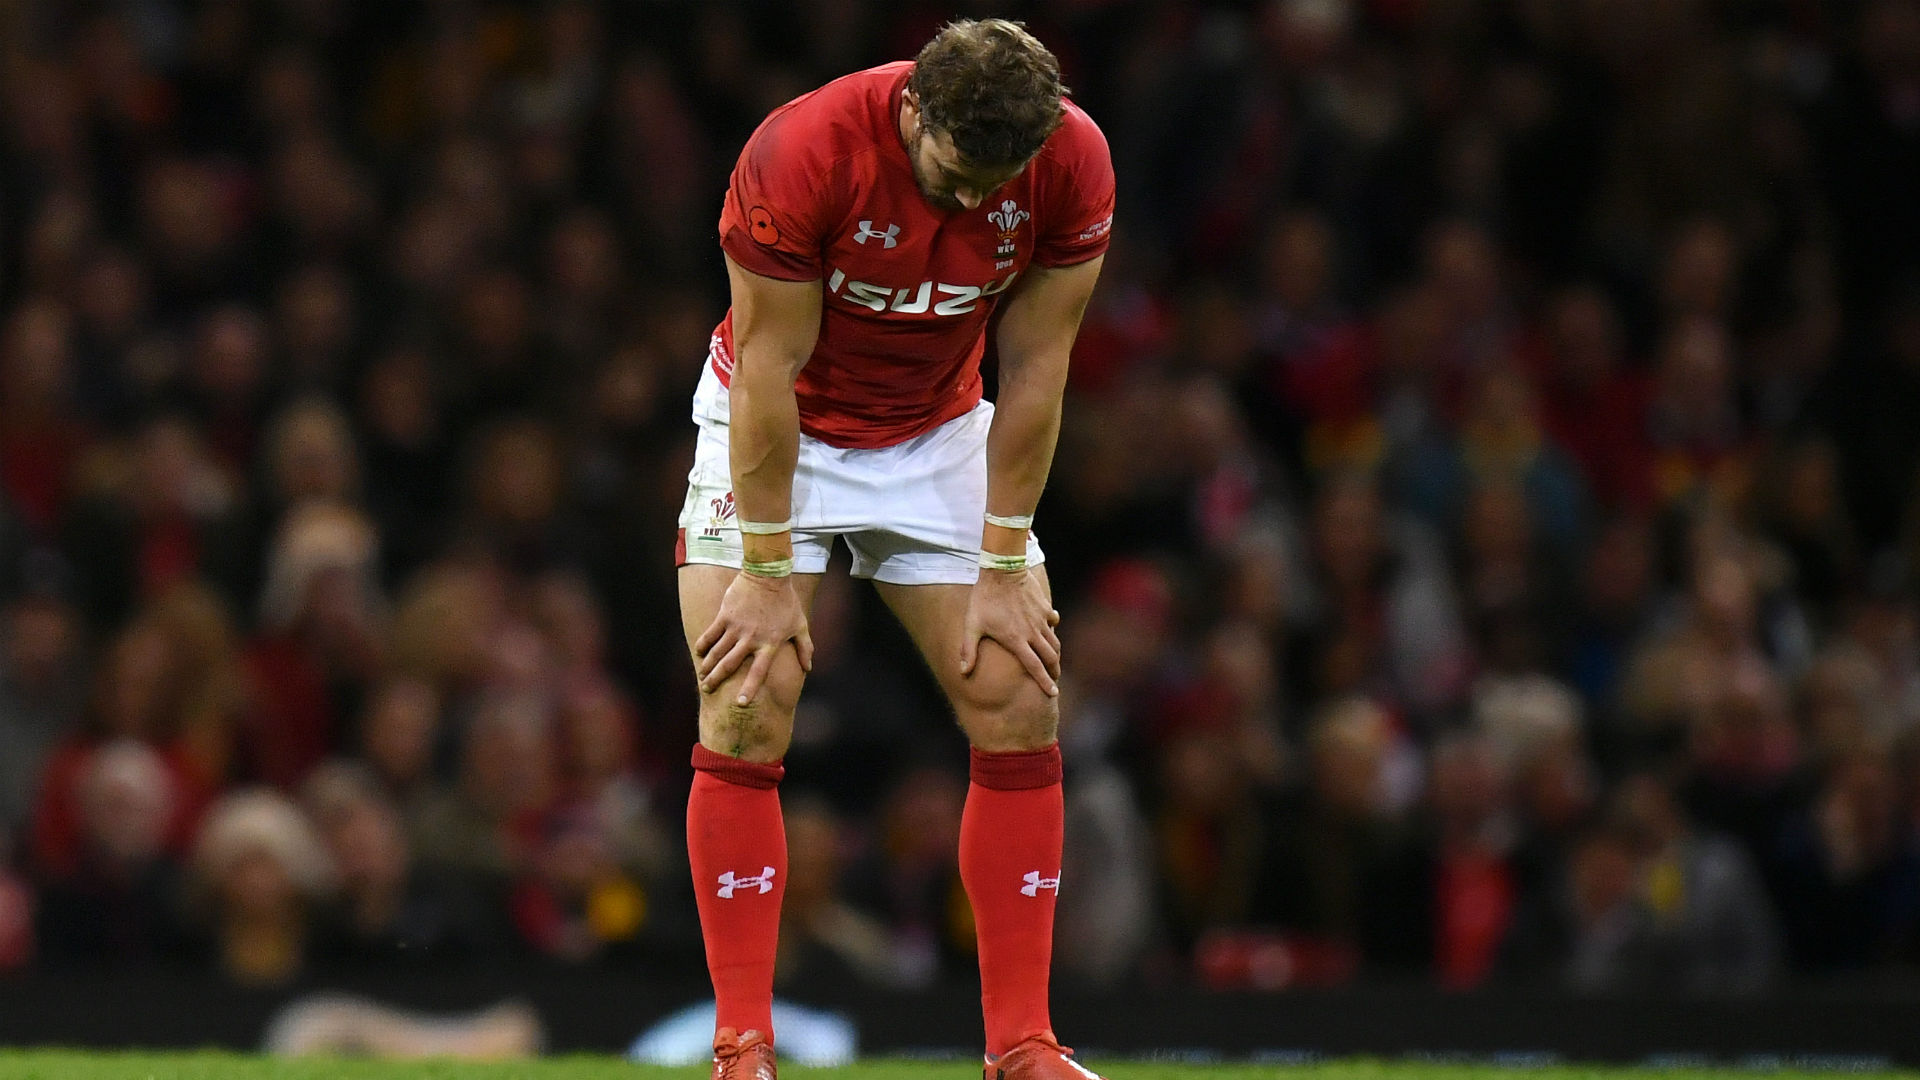 Halfpenny, Davies and Williams set to miss France clash